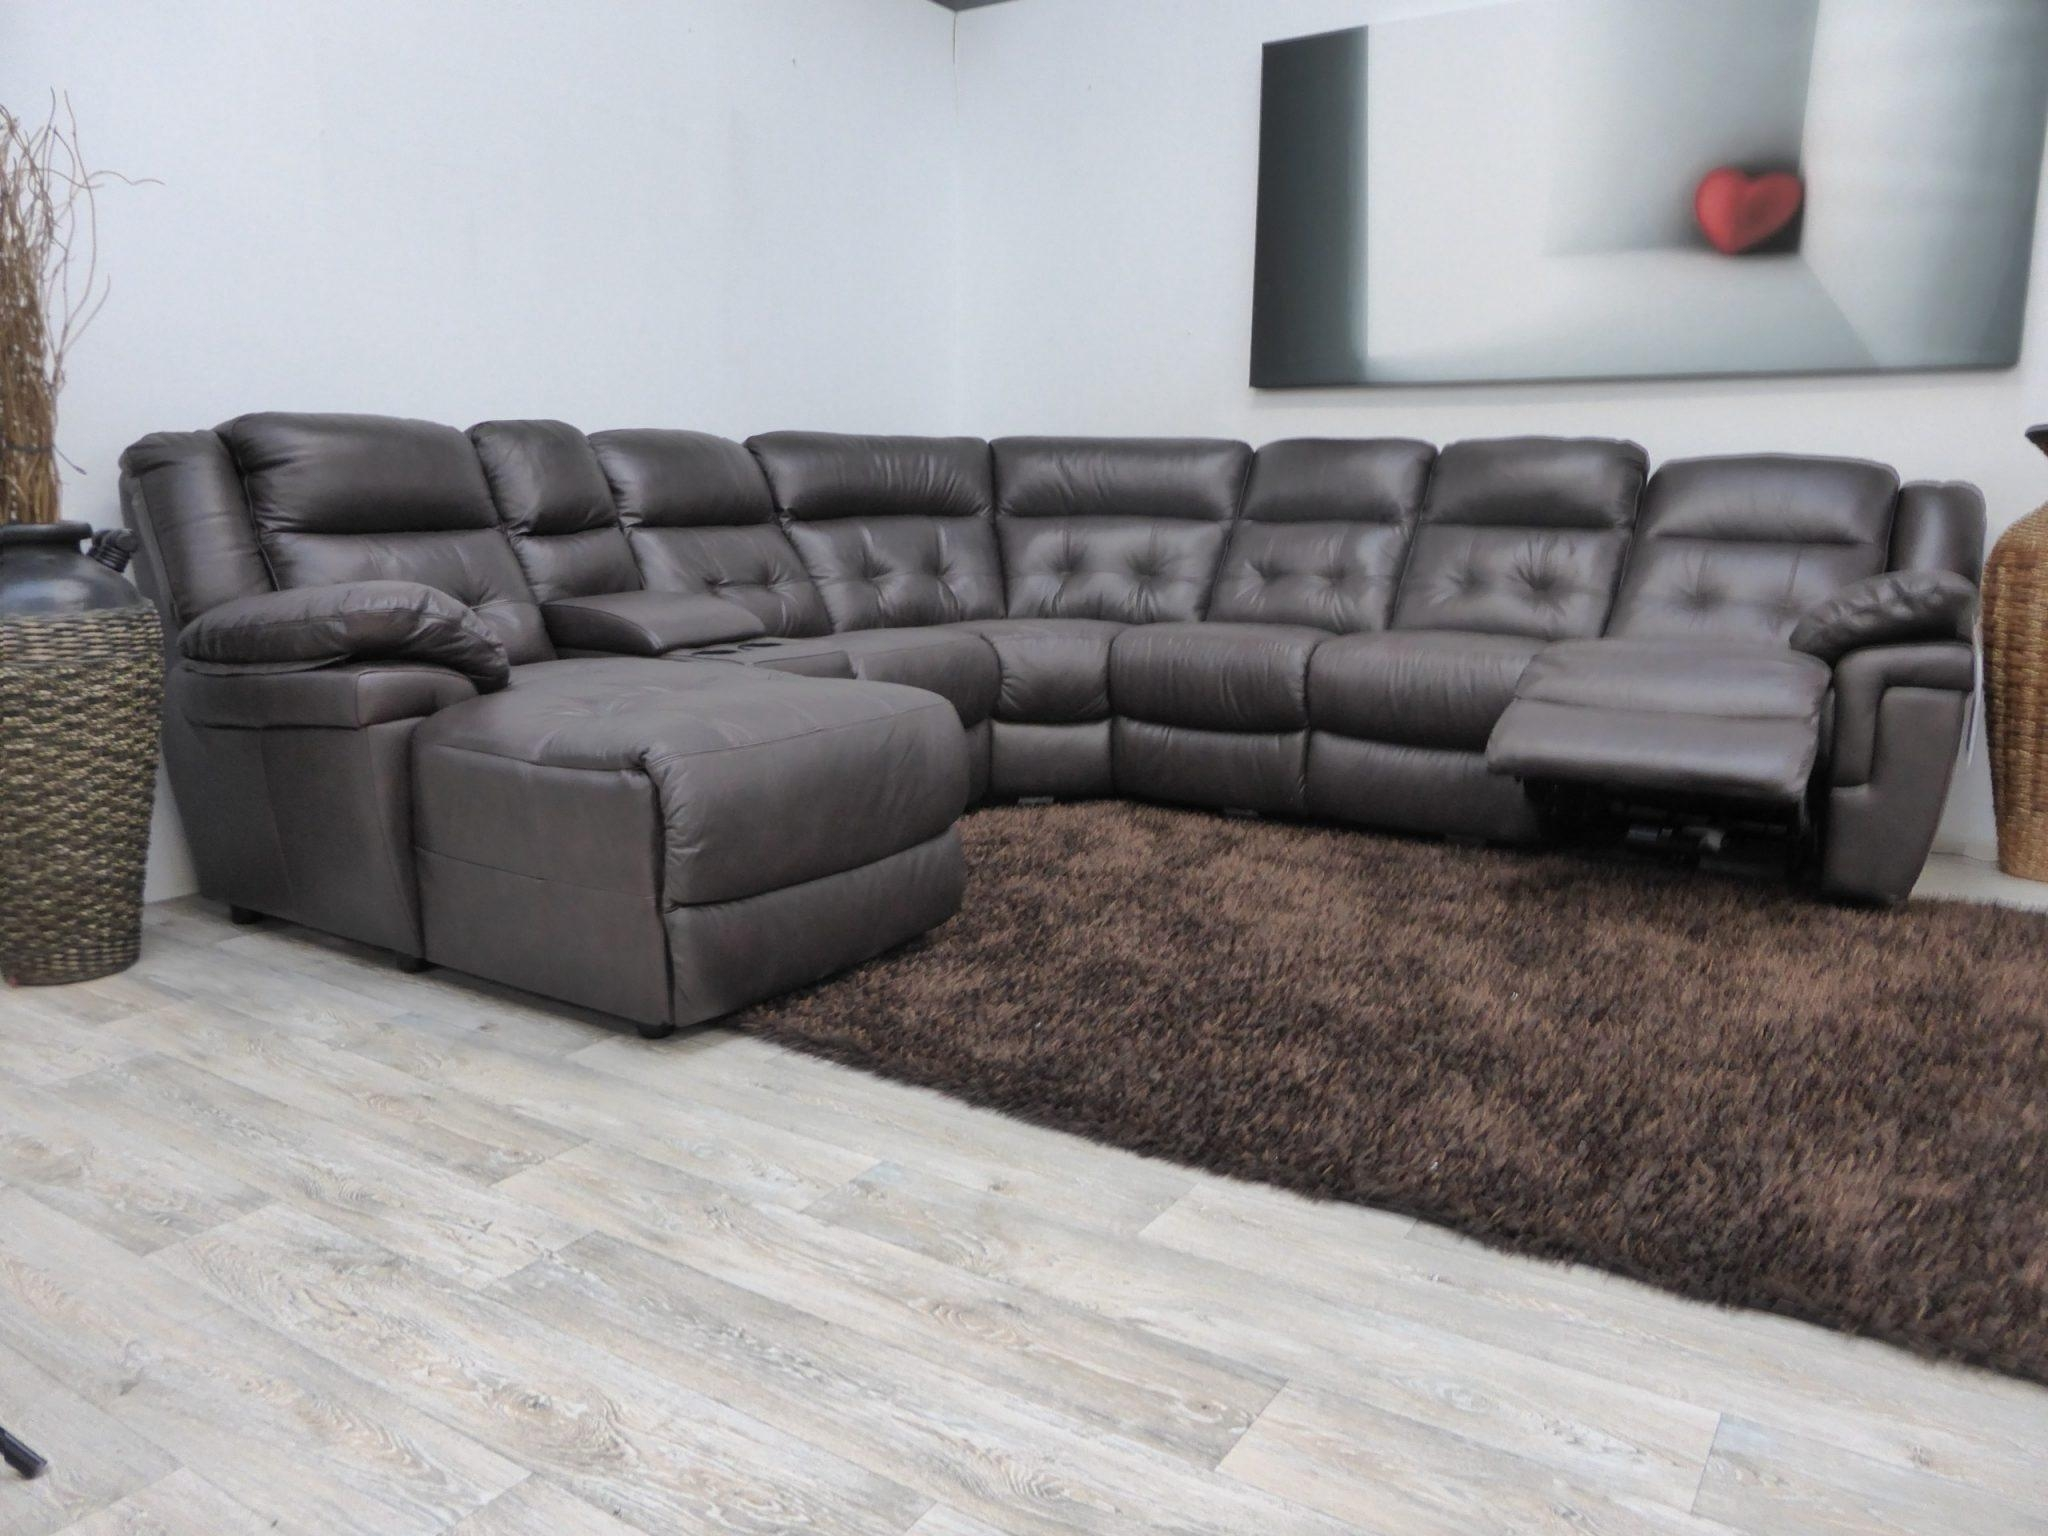 Furniture: Impressive Lazy Boy Sectional For Living Room Furniture With Regard To Lazy Boy Leather Sectional (View 11 of 20)